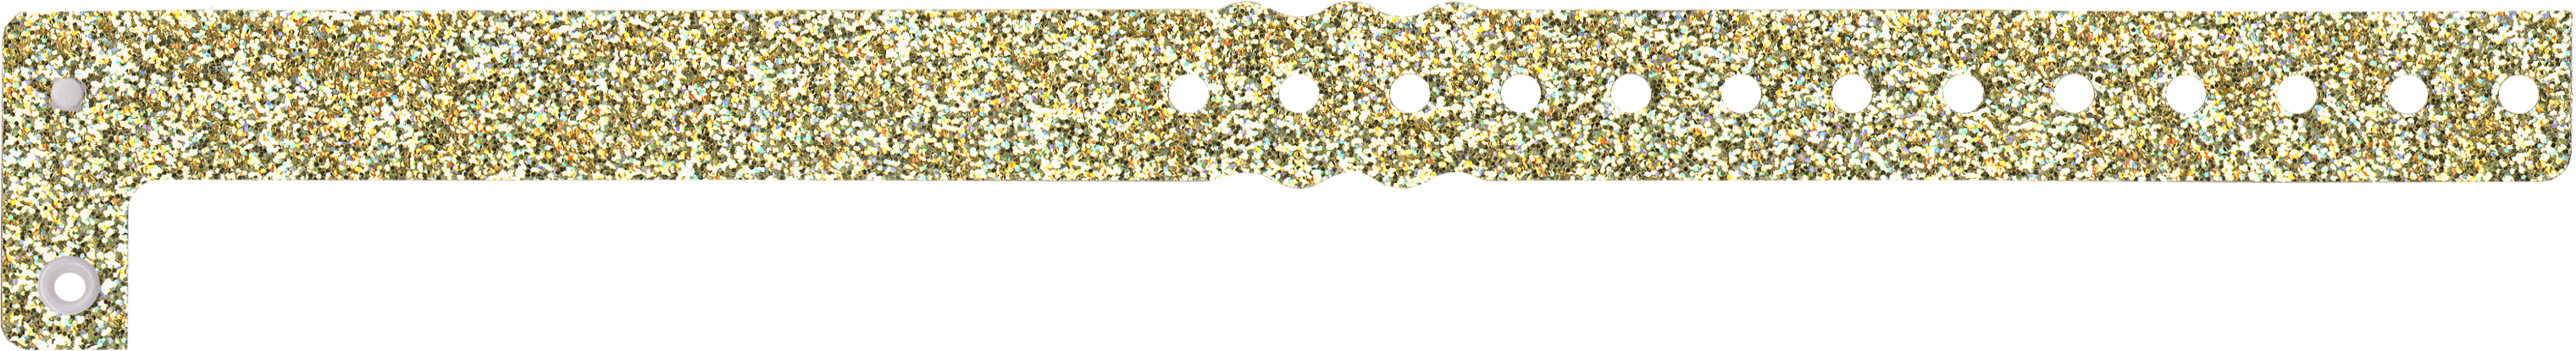 Design your own Plastic L-Shape Sparkle one gold black/white imprint wristband with text, images, clipart and vector shapes